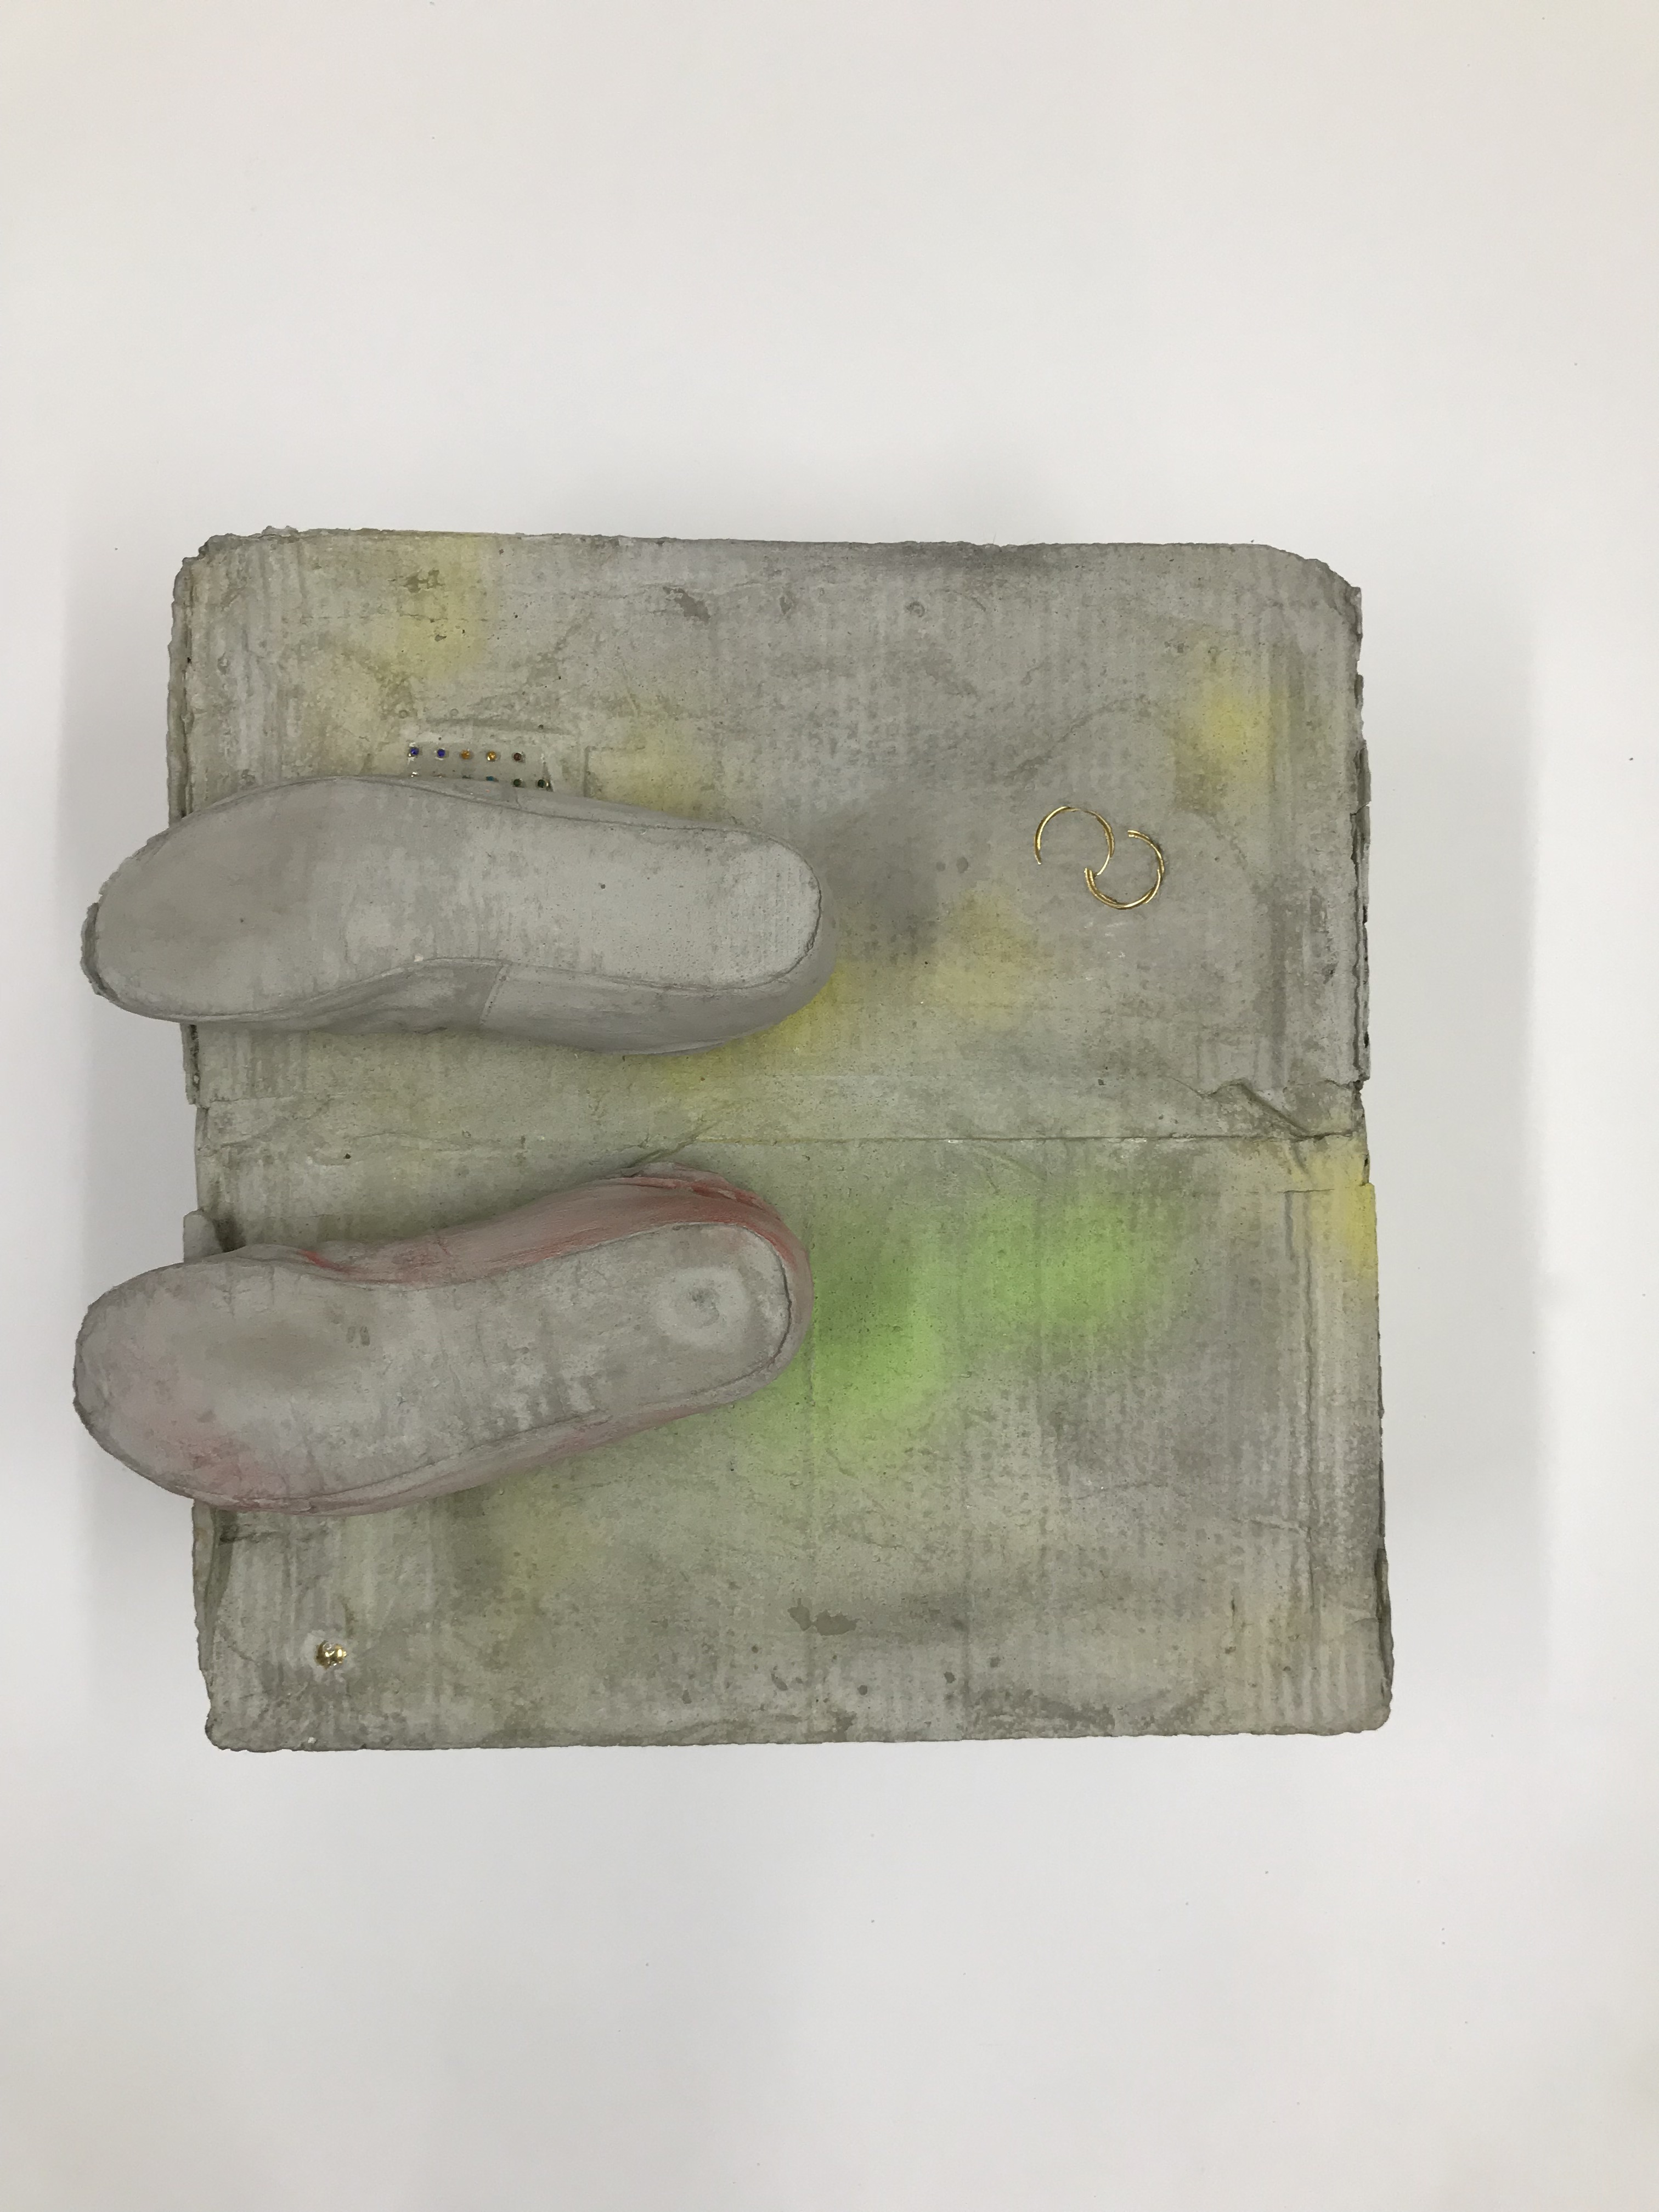 Sculpture by Rachel Walters in cast concrete with jewellery and pigment titled Something about your face, the sun and the shadows